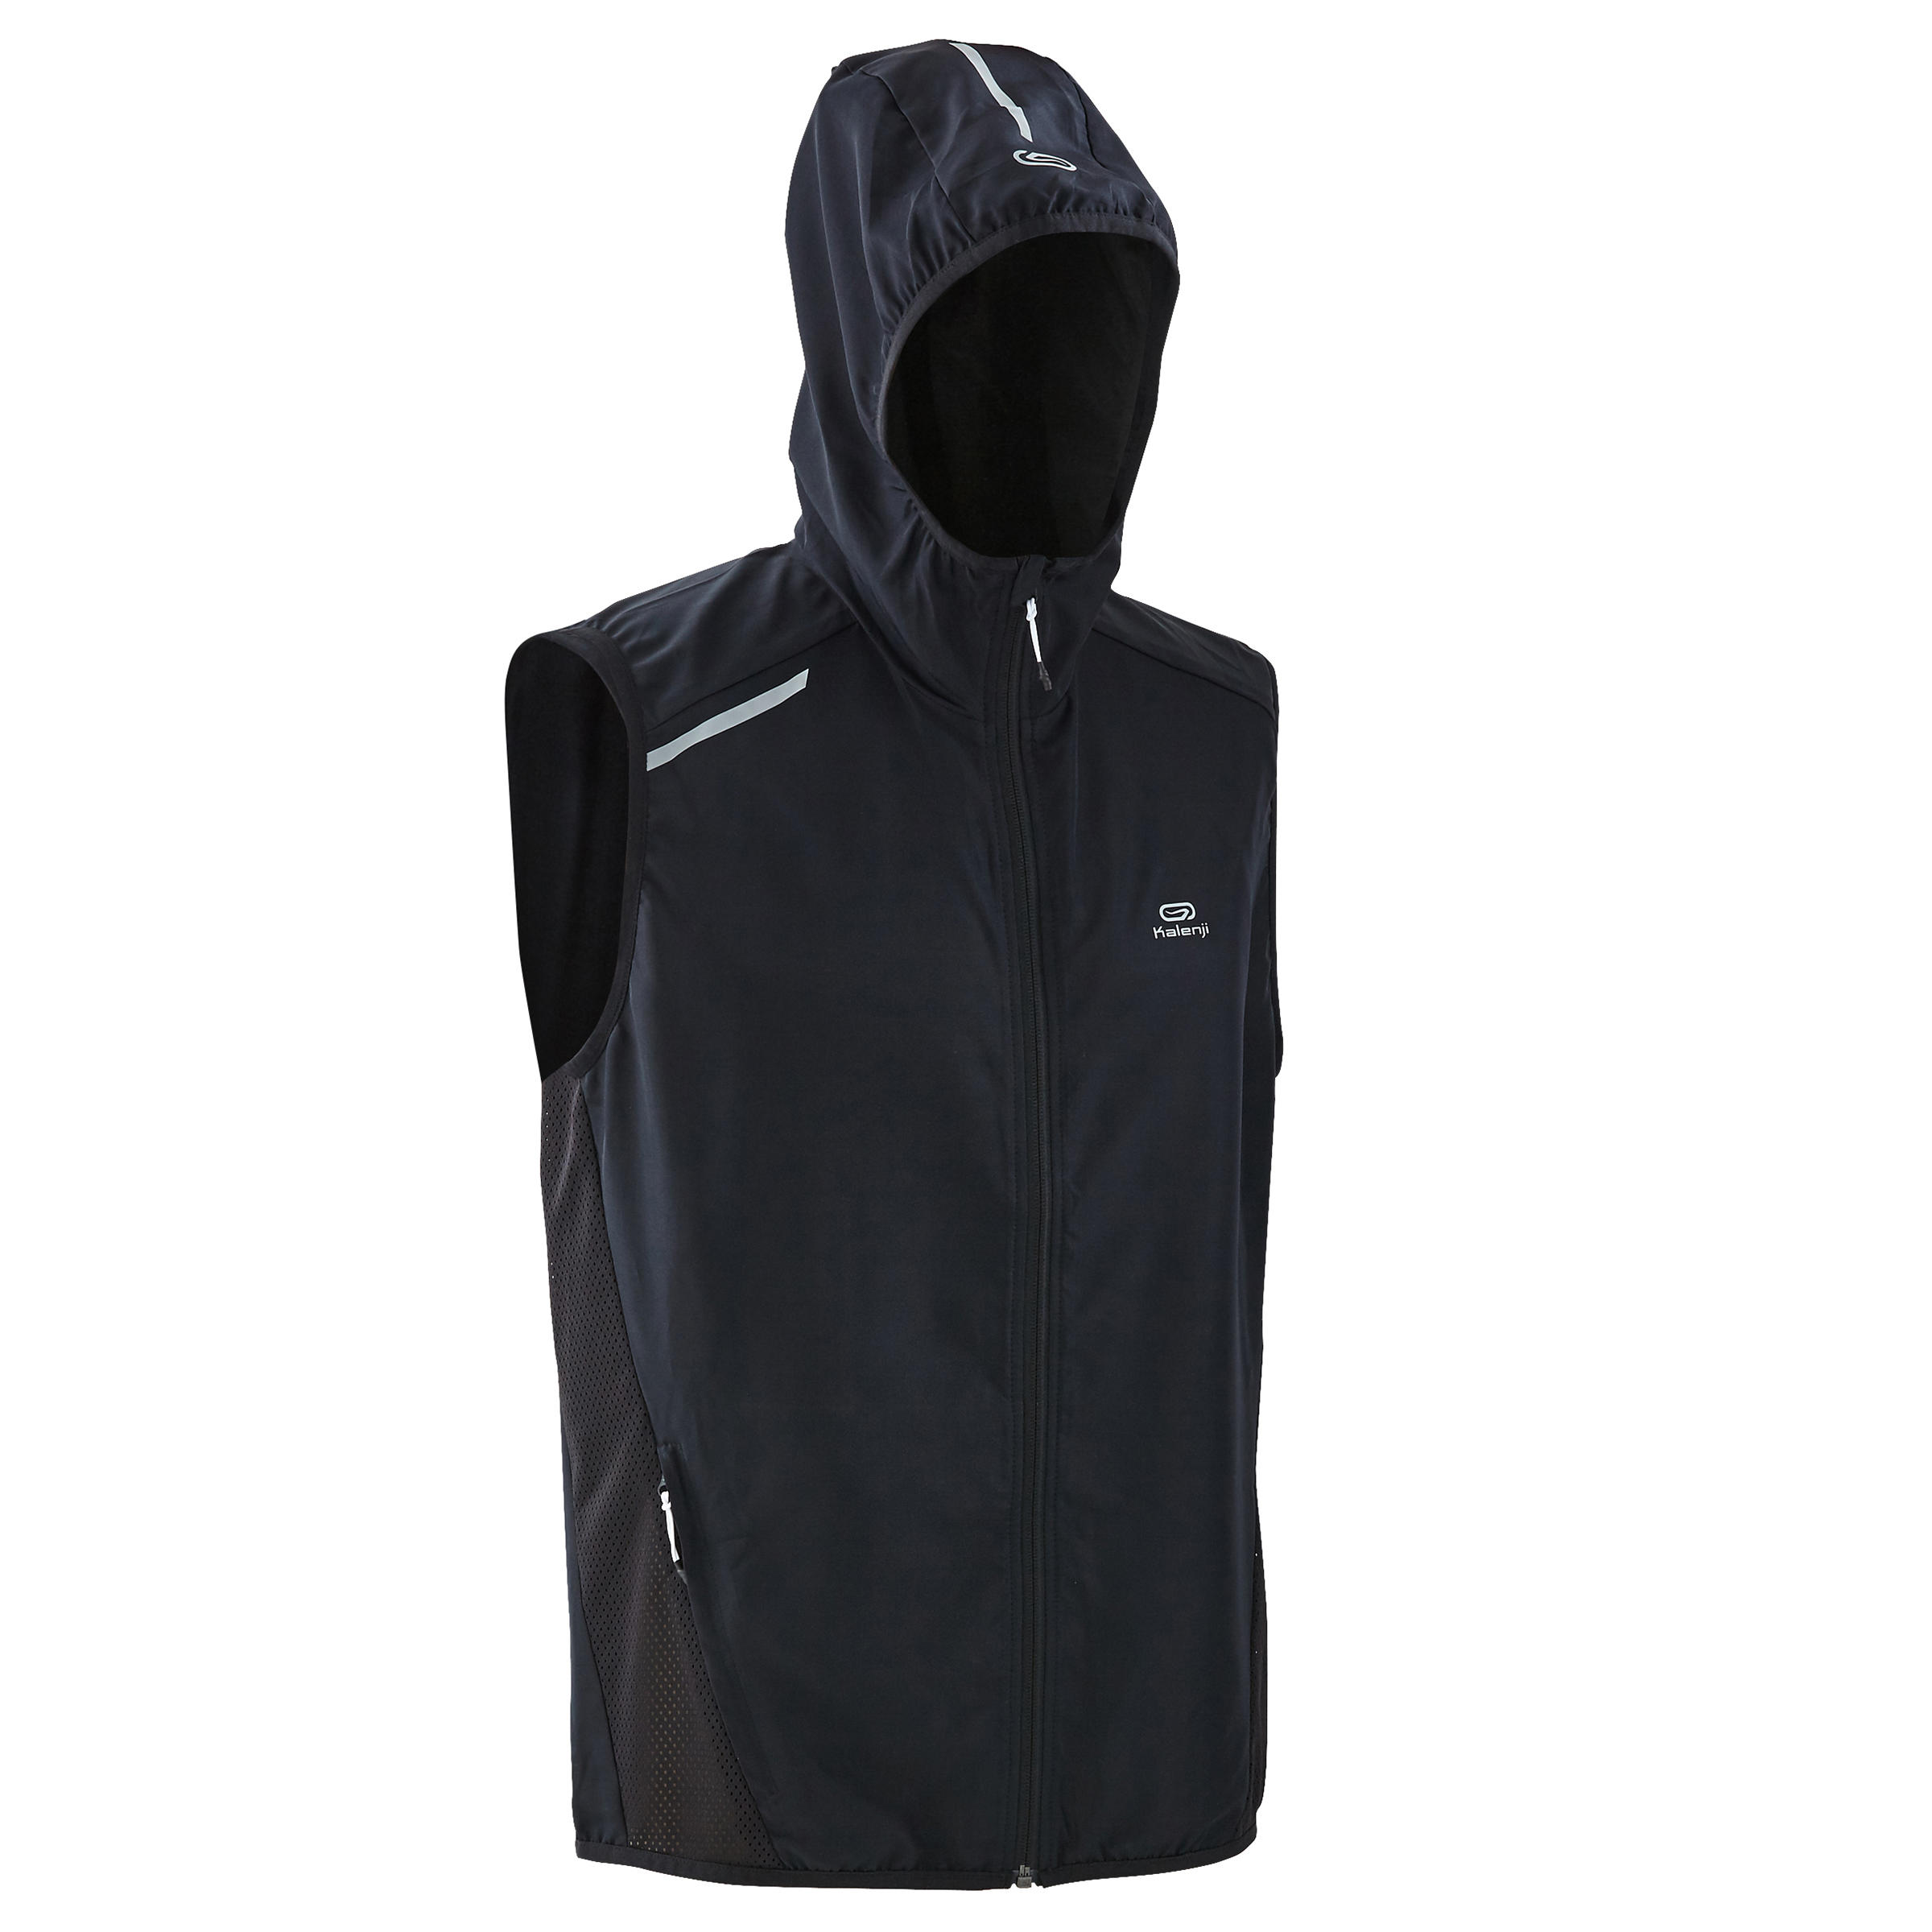 RUN WIND H MEN'S VEST BLACK